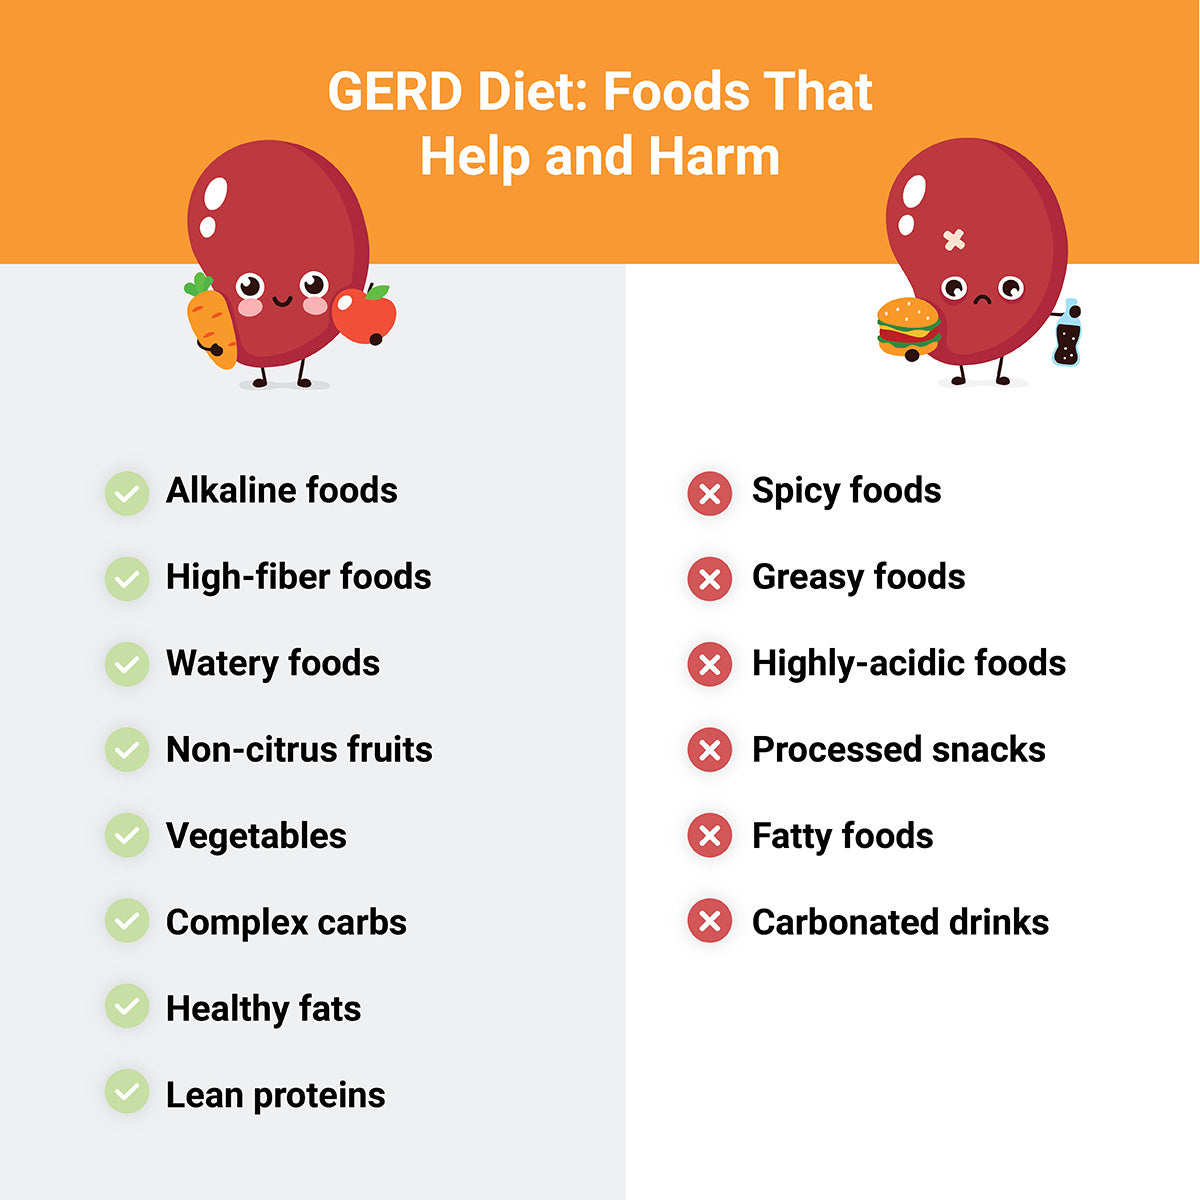 GERD foods to avoid and foods to enjoy